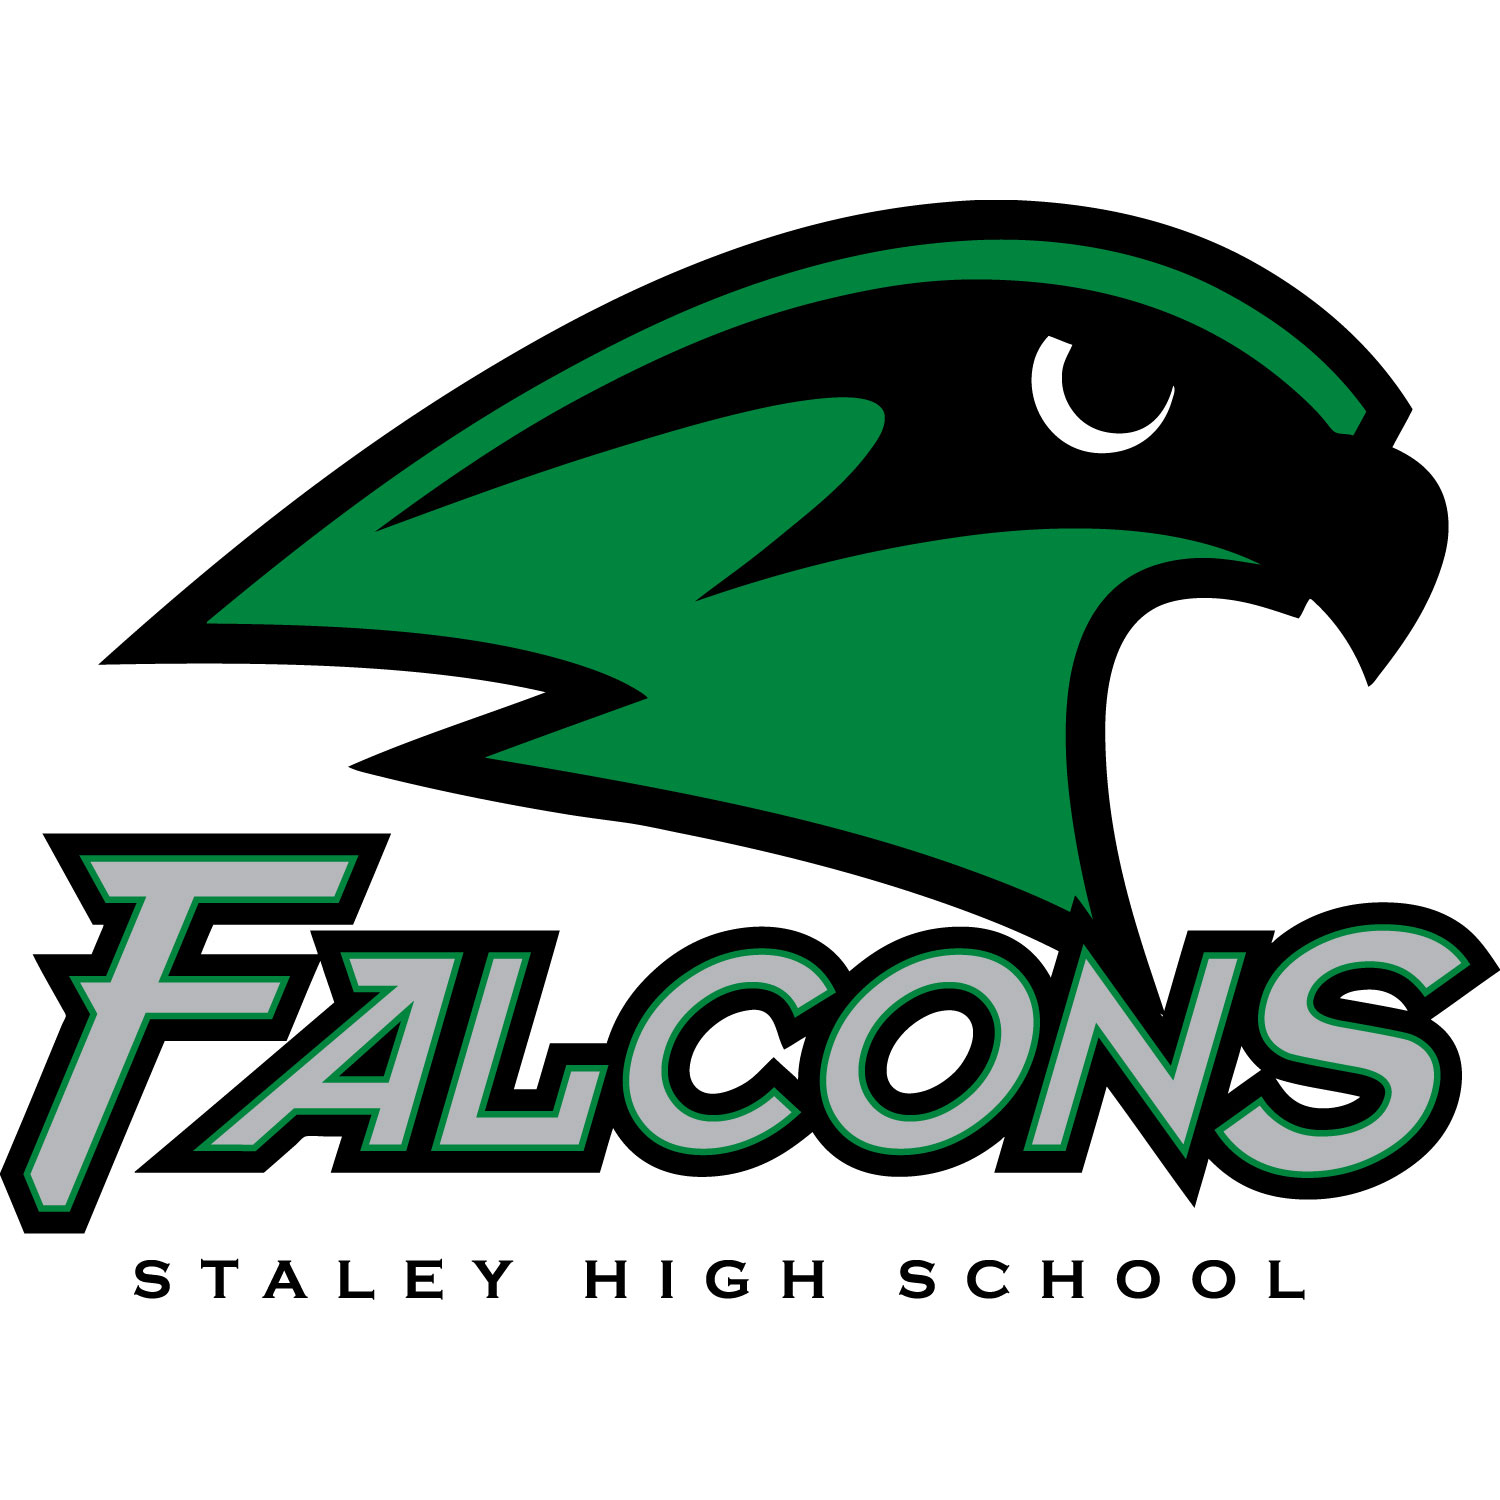 MSHSAA Staley High School School Information